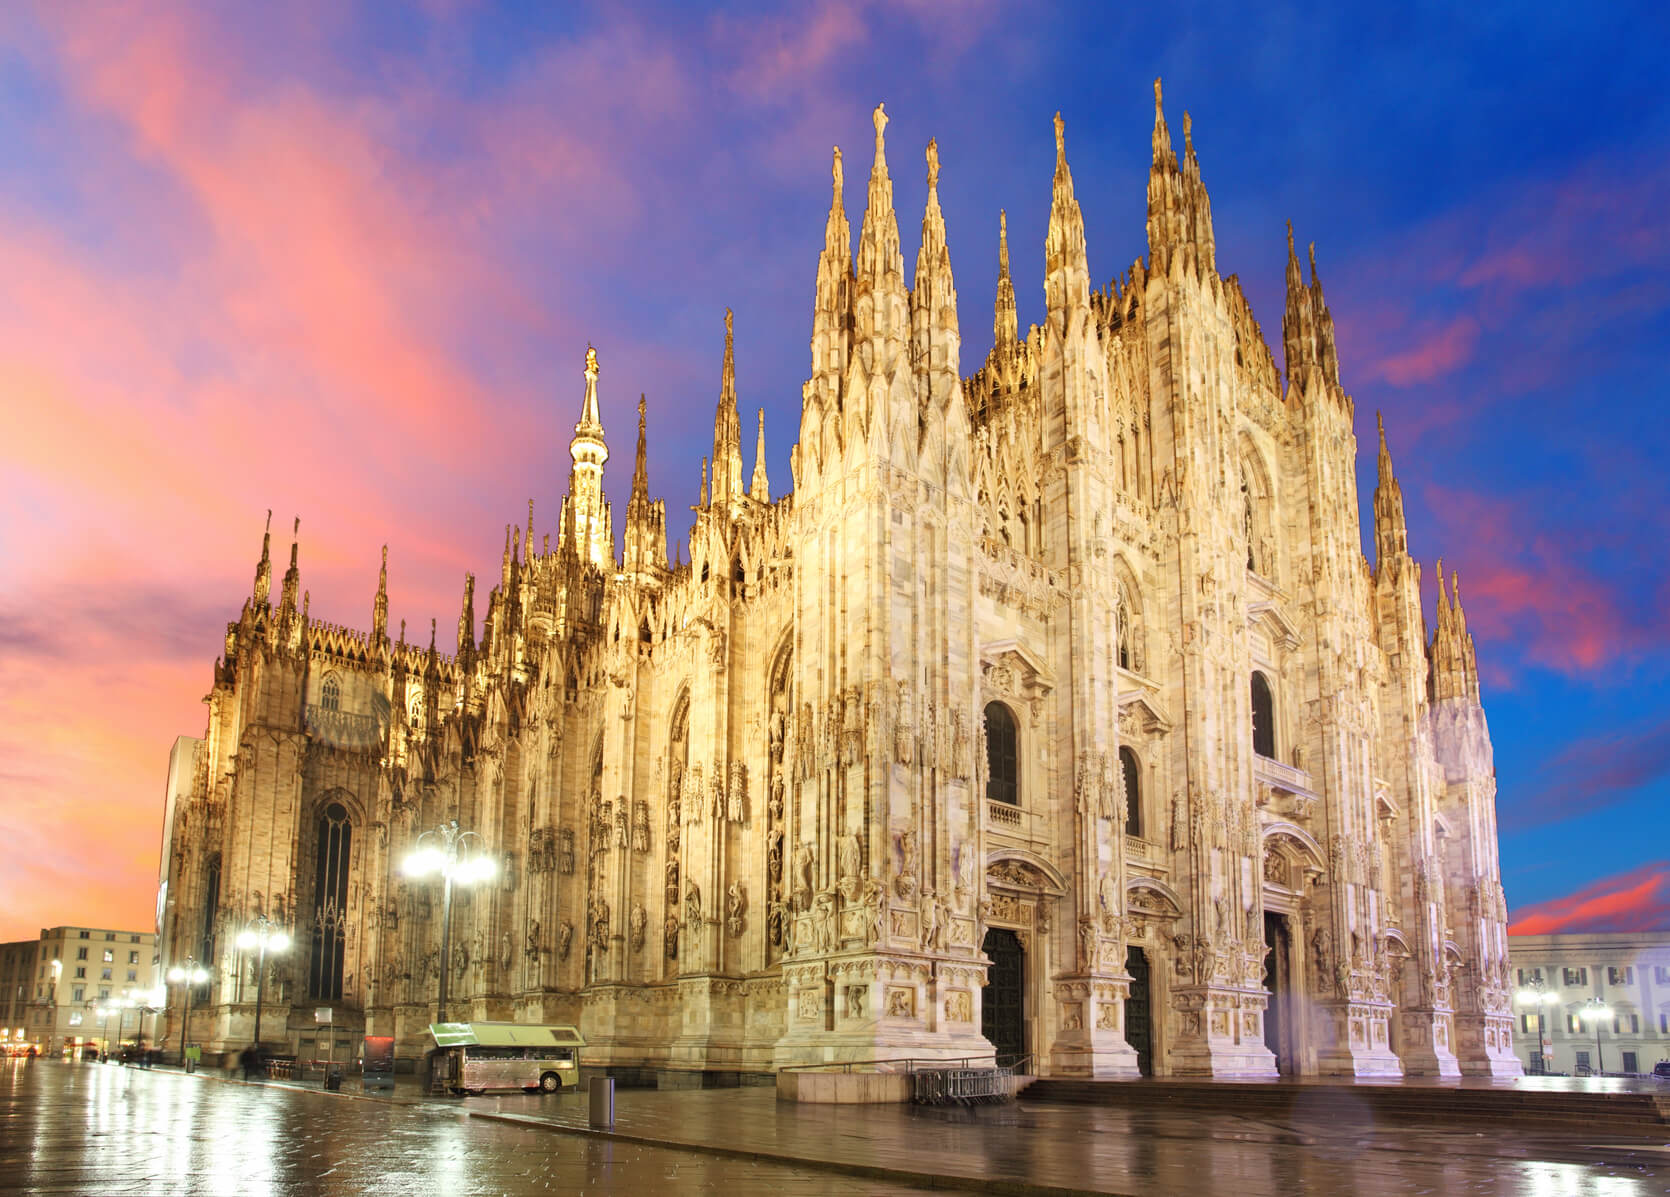 Flight deals from Cape Town, South Africa to Milan, Italy | Secret Flying